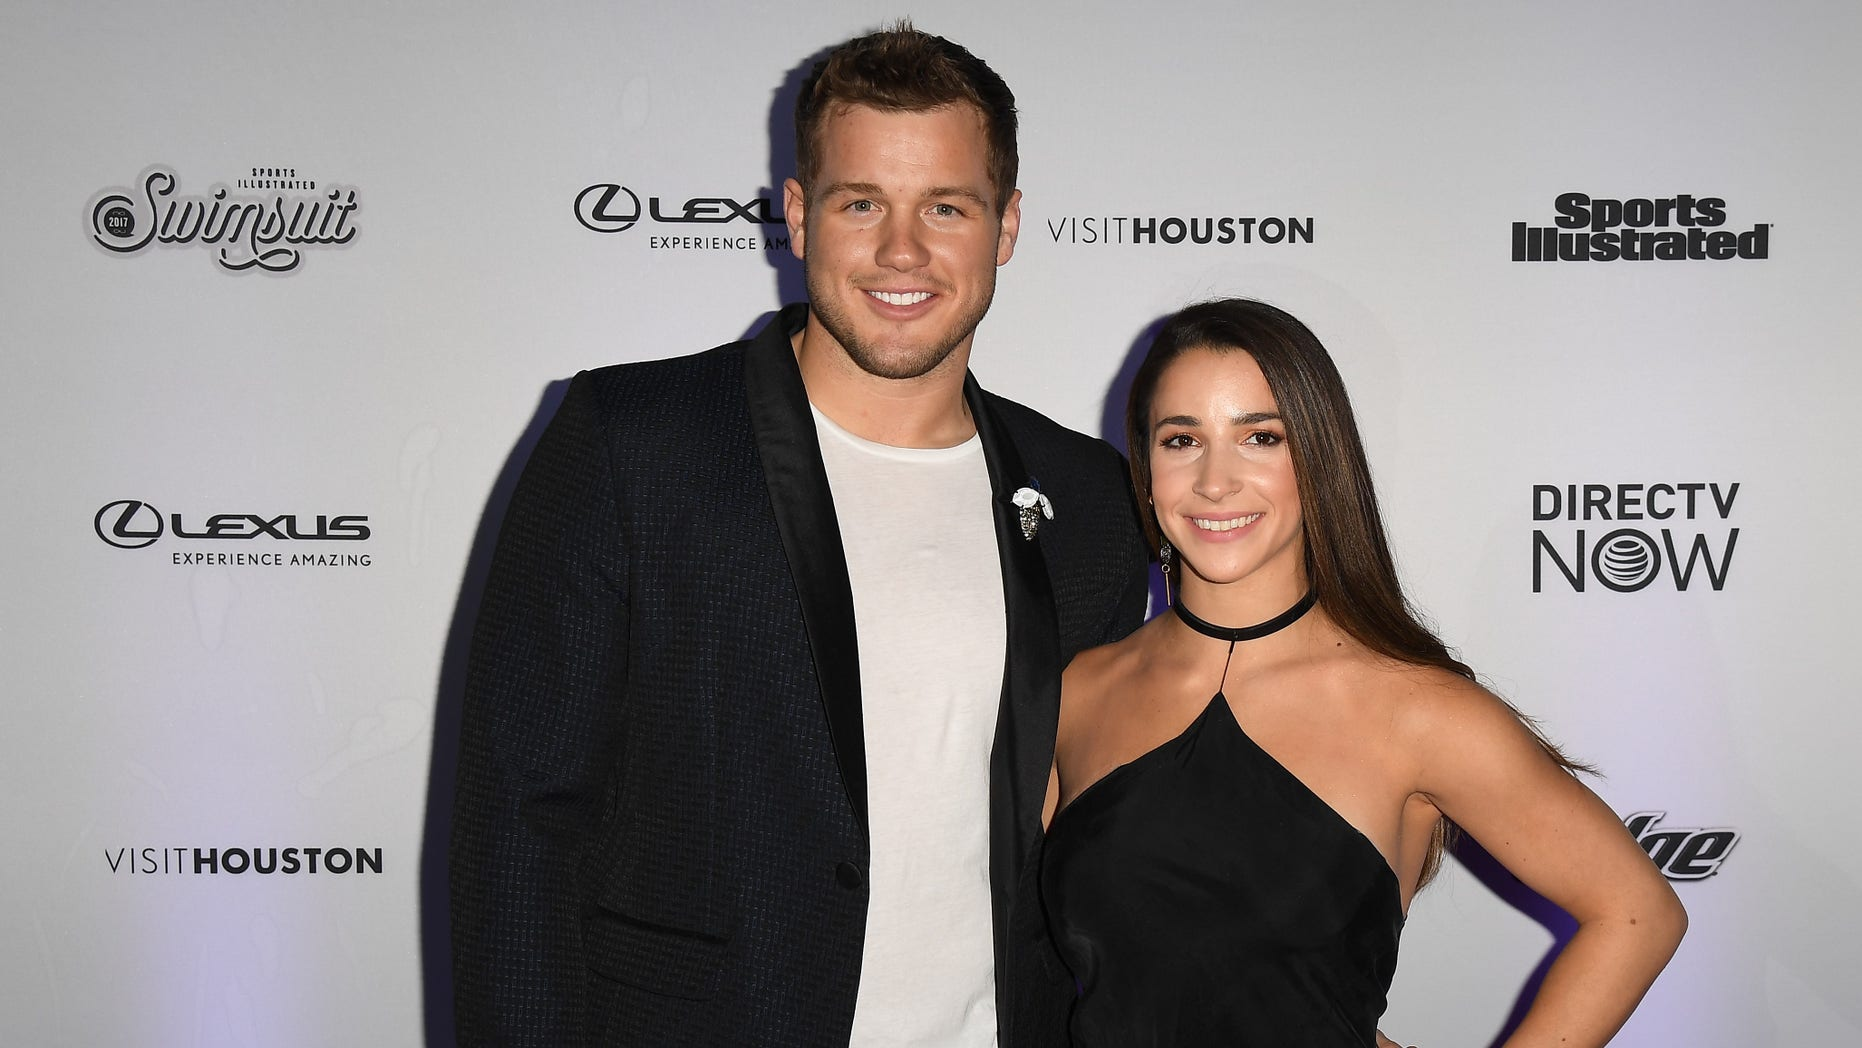 Colton Underwood talked about Aly Raisman being her